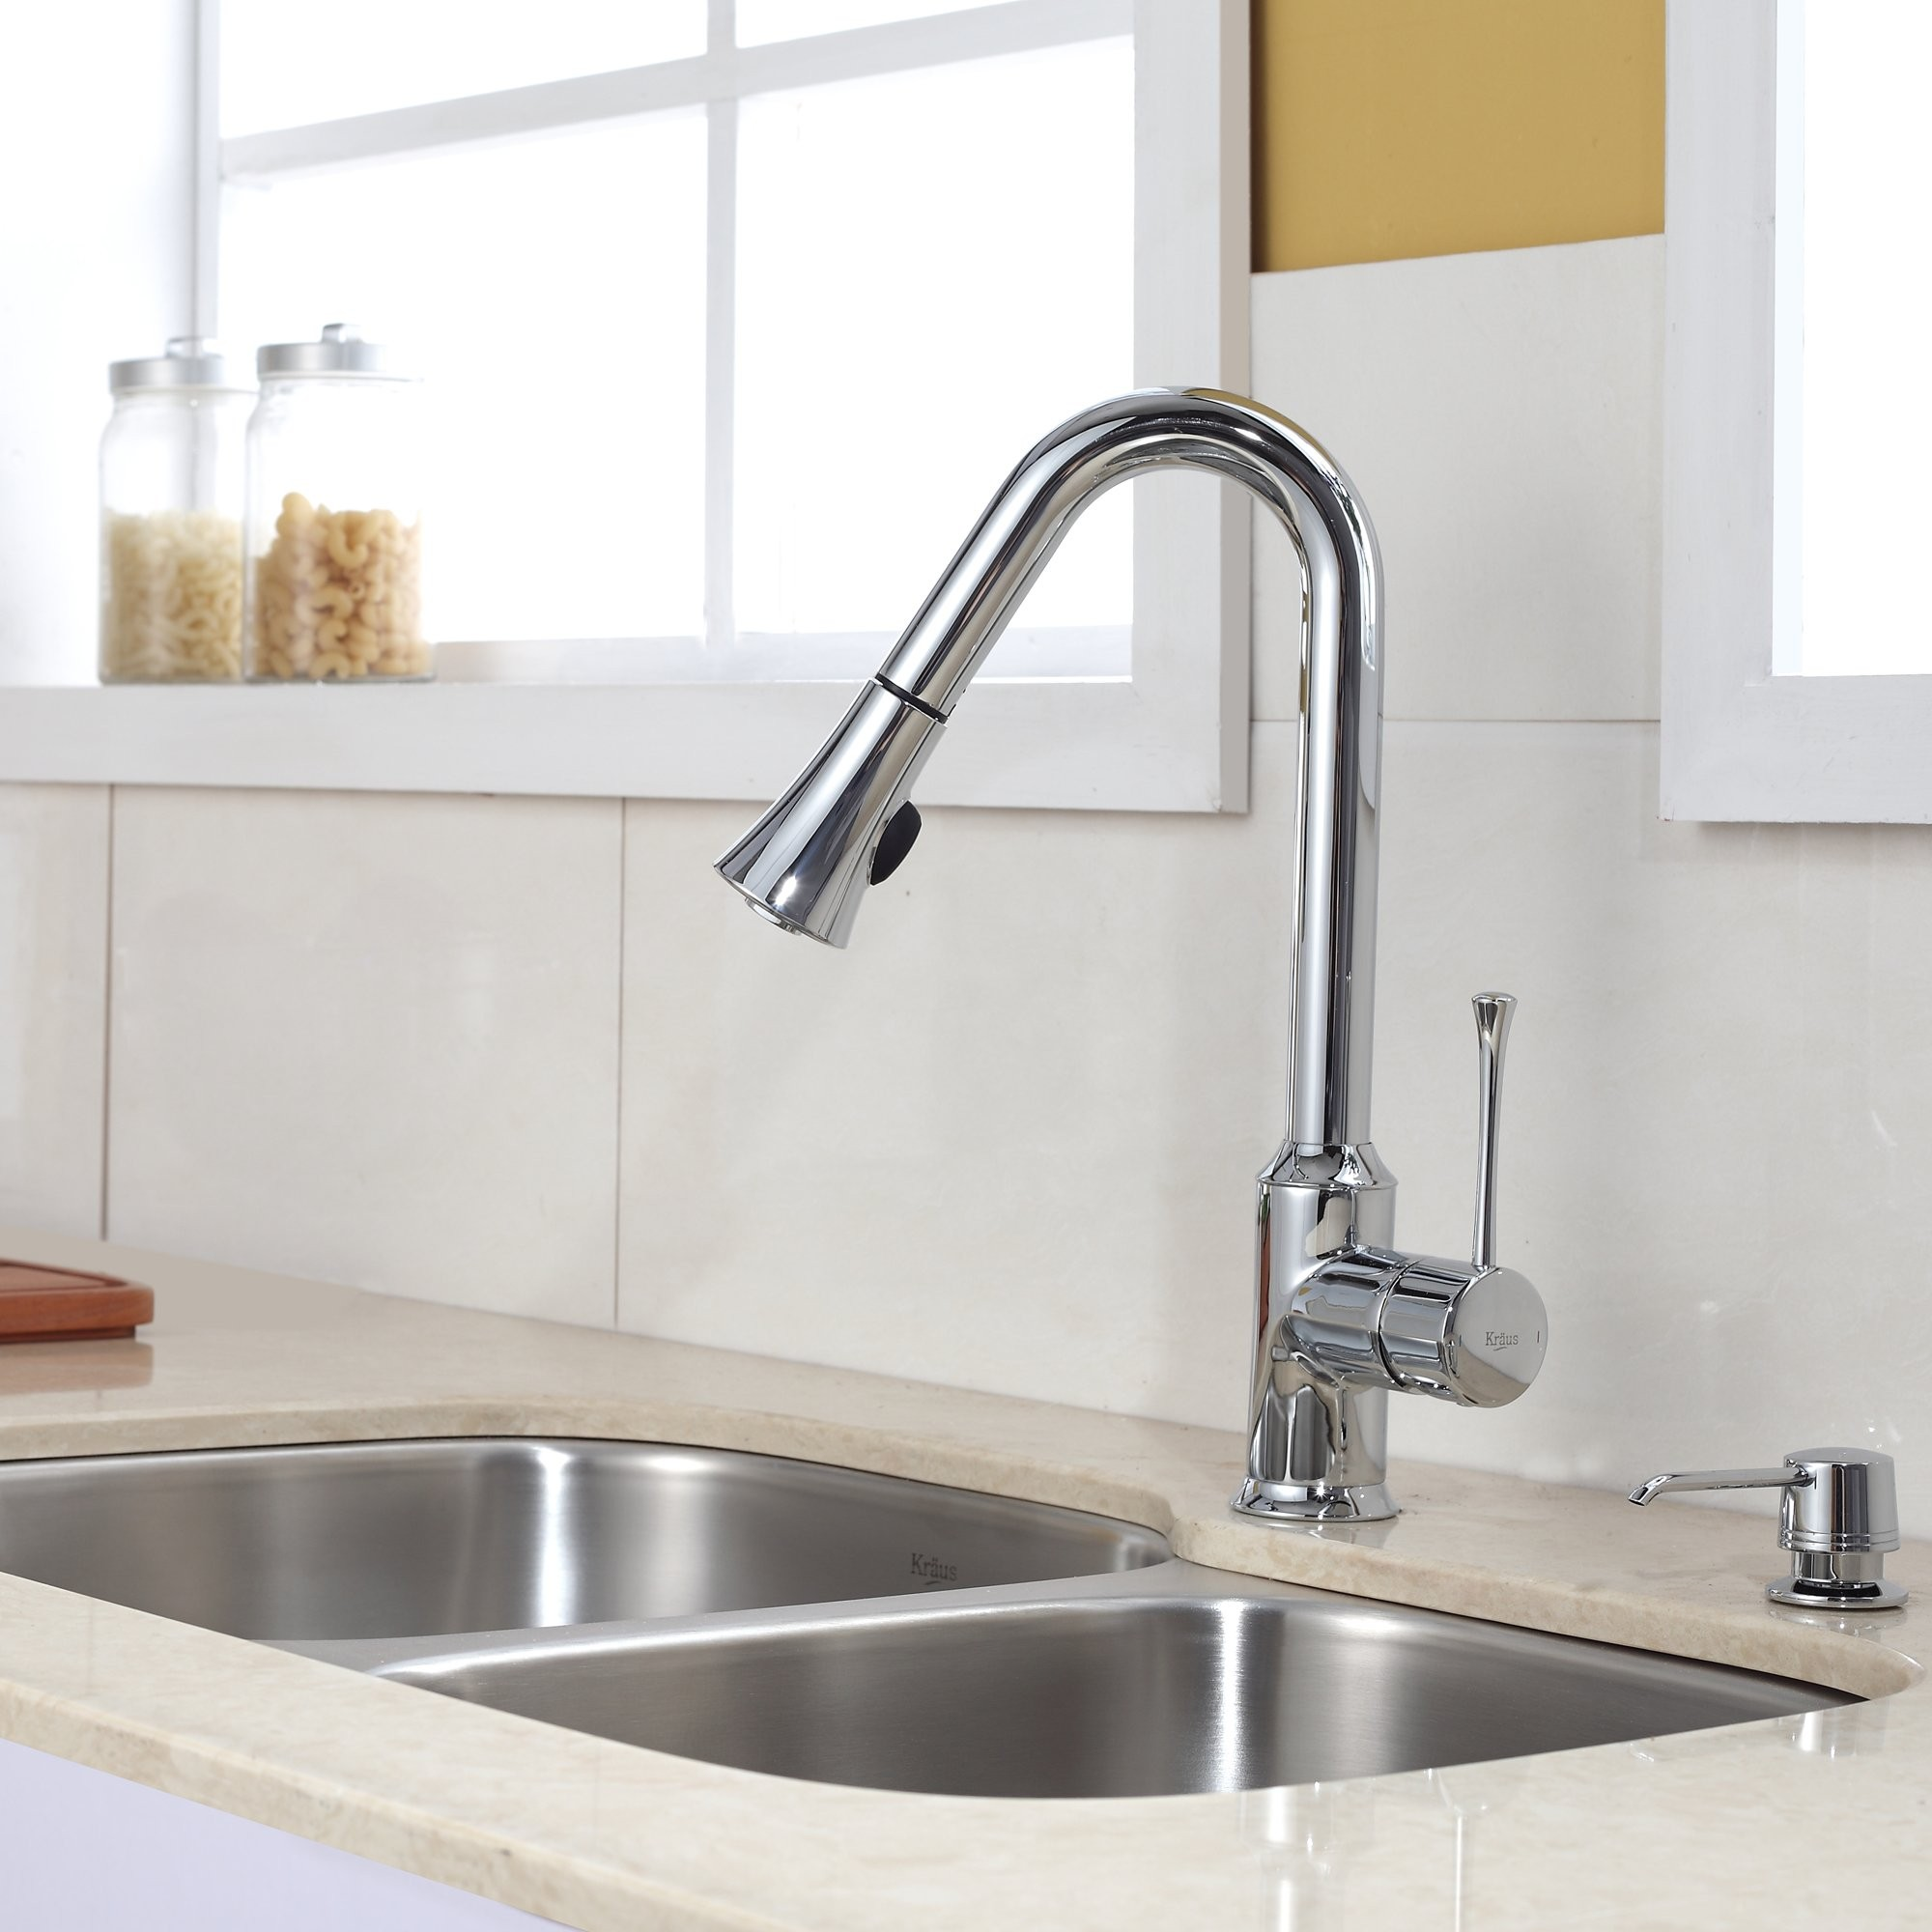 Menards Sinks | Menards Laundry Sink | Kitchen Sinks Stainless Steel